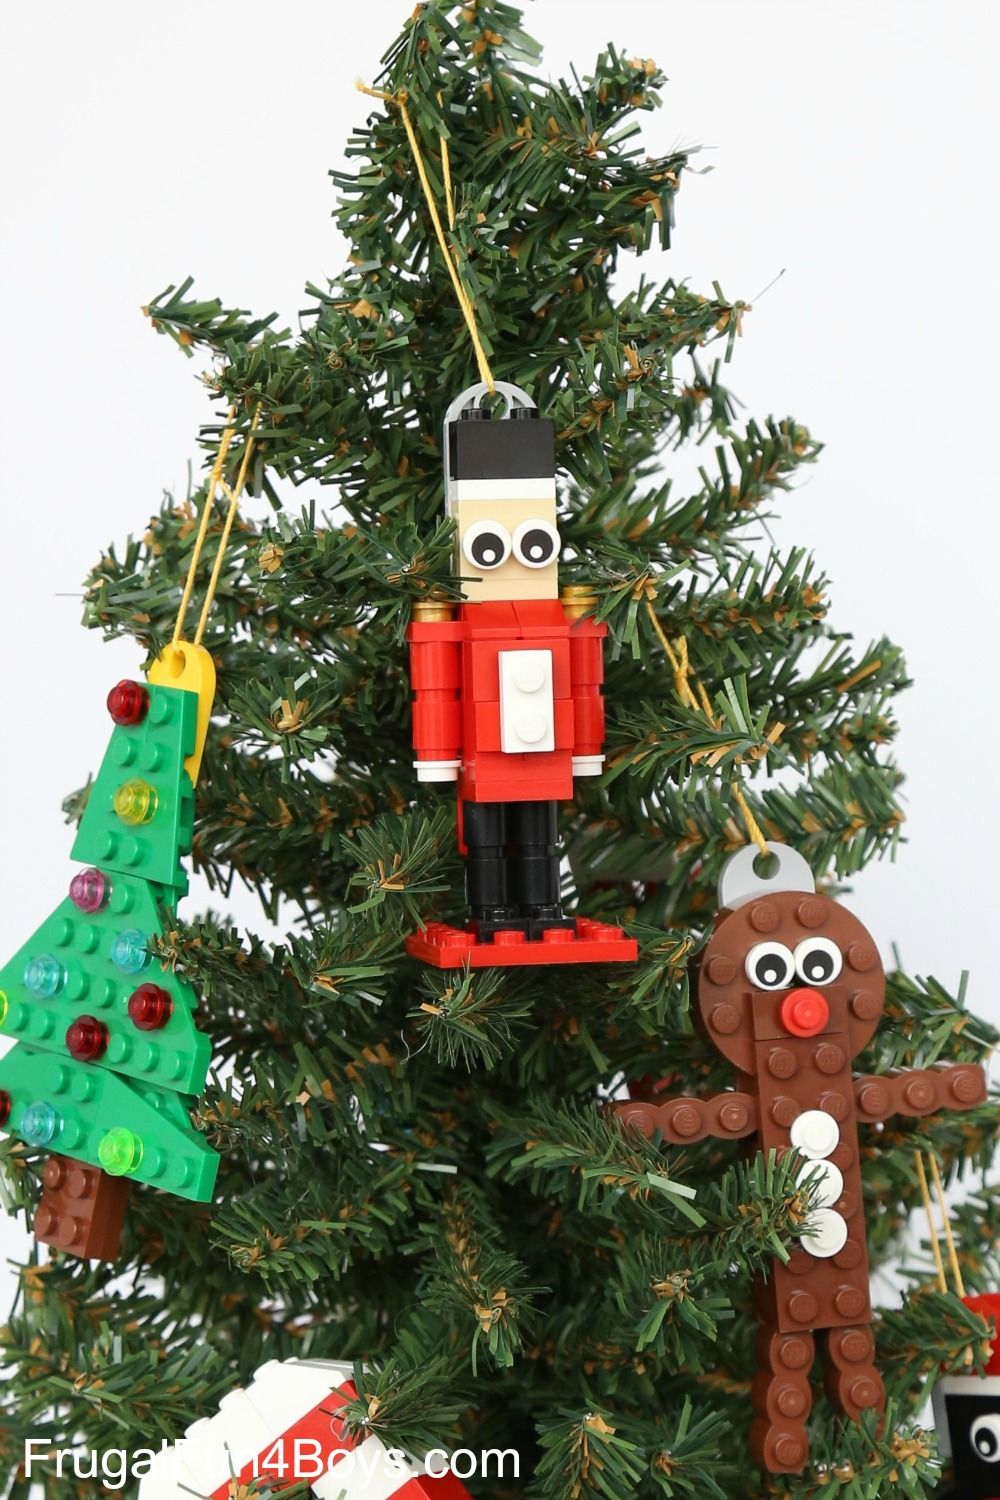 How To Build A Lego Nutcracker Christmas Ornament Frugal Fun For Boys And Girls Lego Christmas Ornaments Lego Christmas Tree Lego Christmas